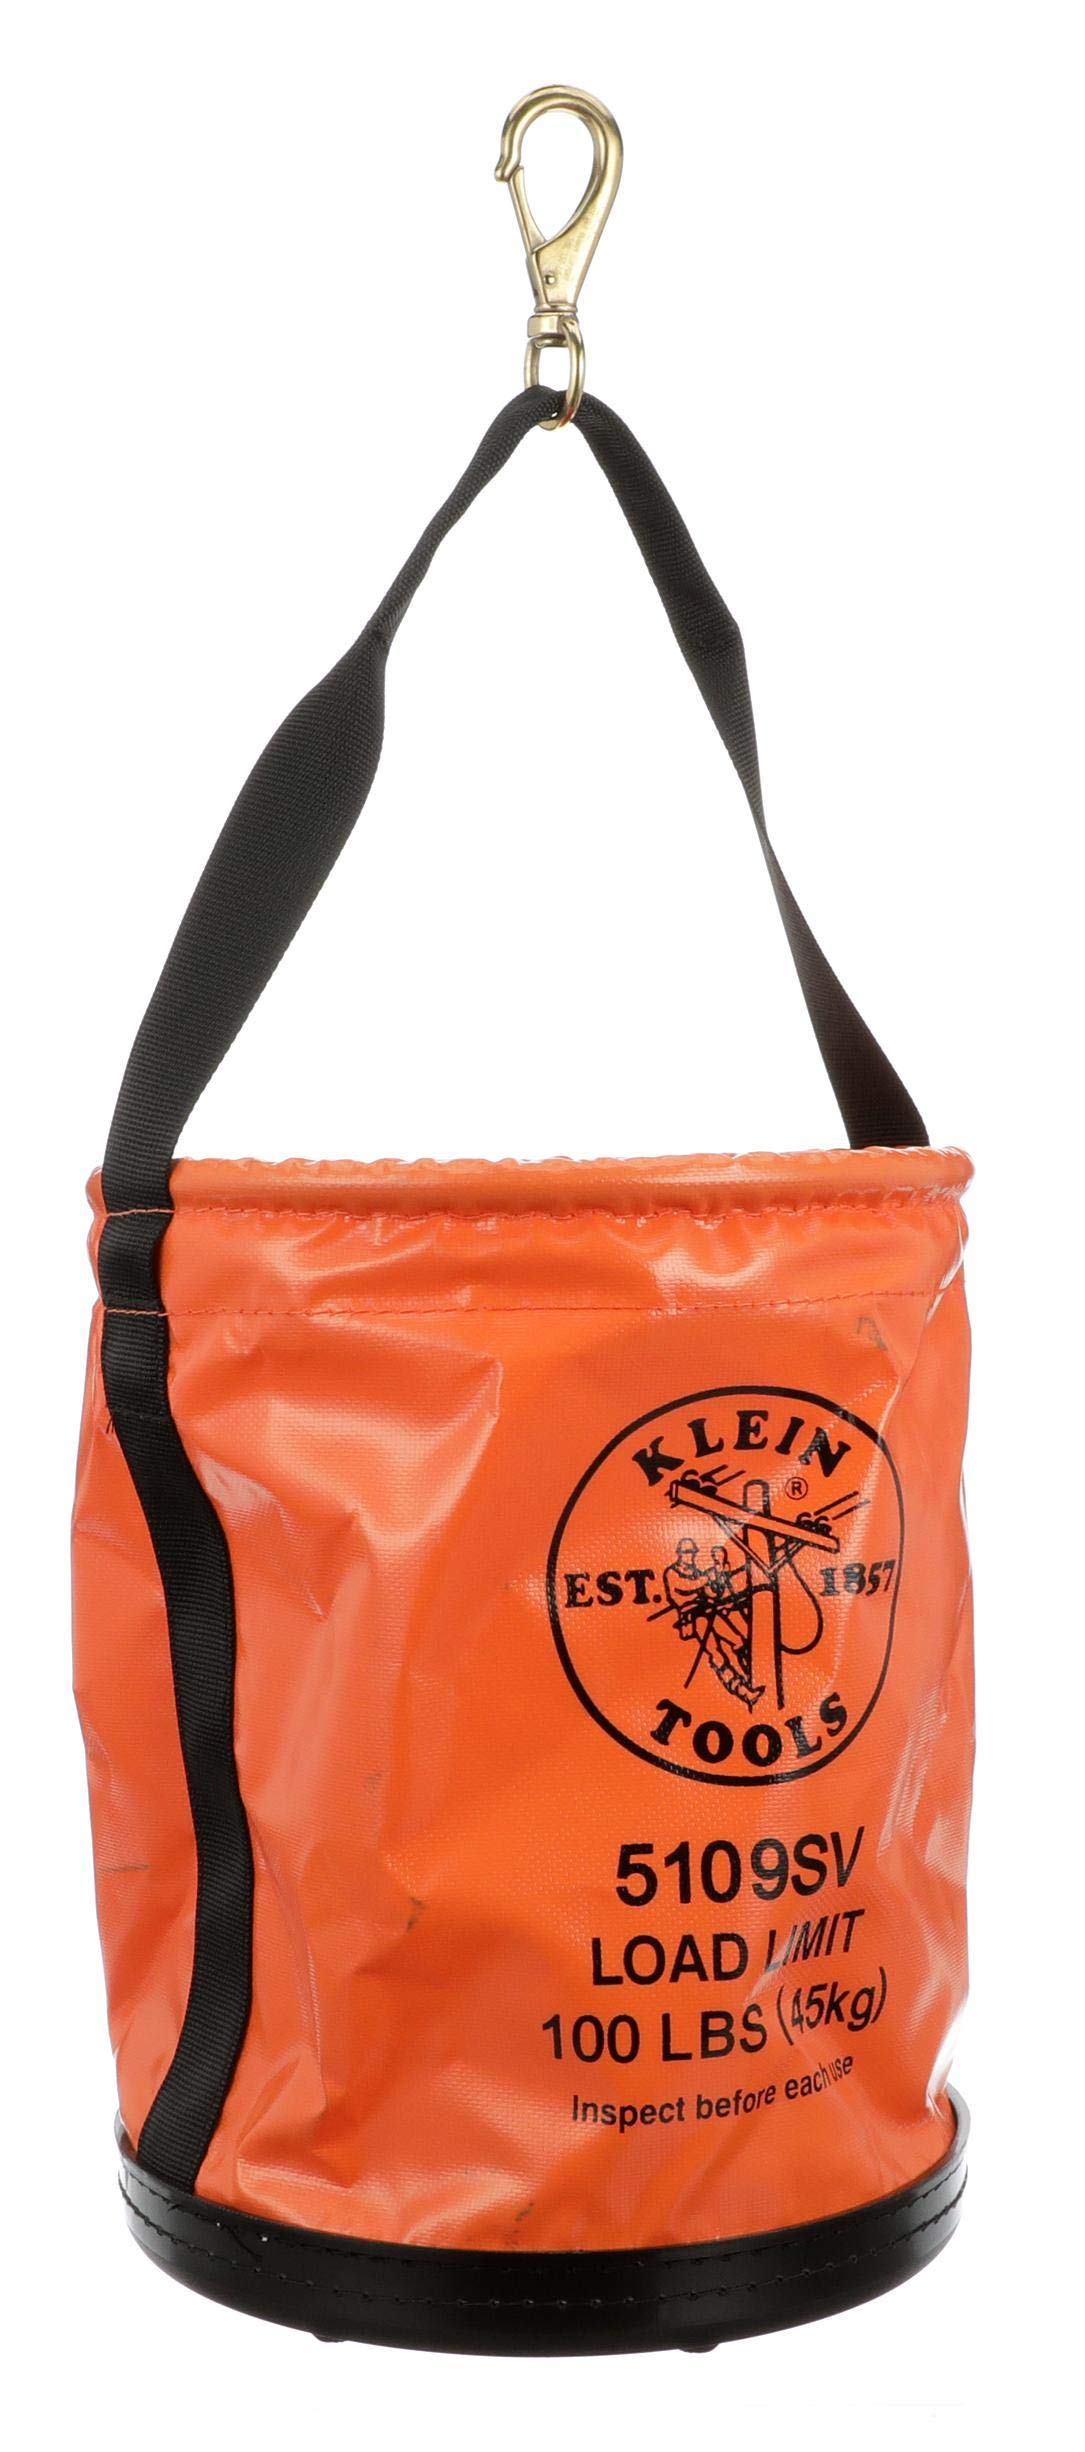 Tool Bucket, Vinyl Lineman Bucket with Swivel Snap and Web Handle, 12-Inch, 100-Pound Load Rated Tool Holder Klein Tools 5109SV by Klein Tools (Image #8)